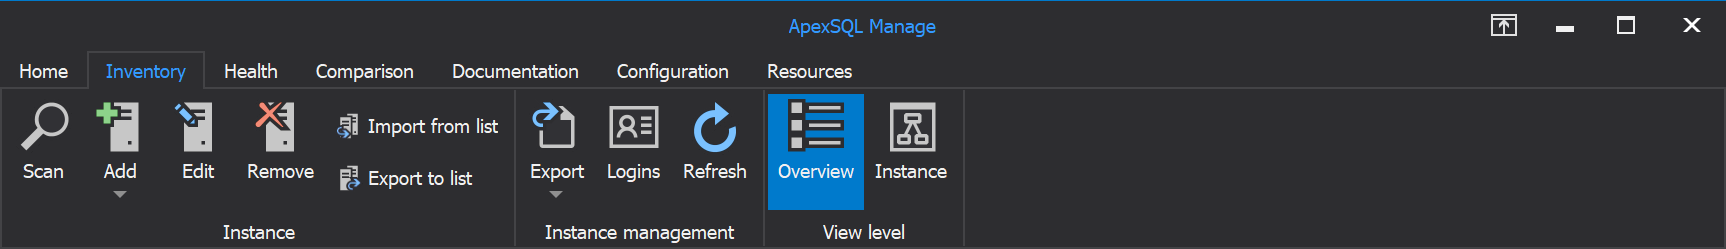 Inventory tab of the ApexSQL Manage